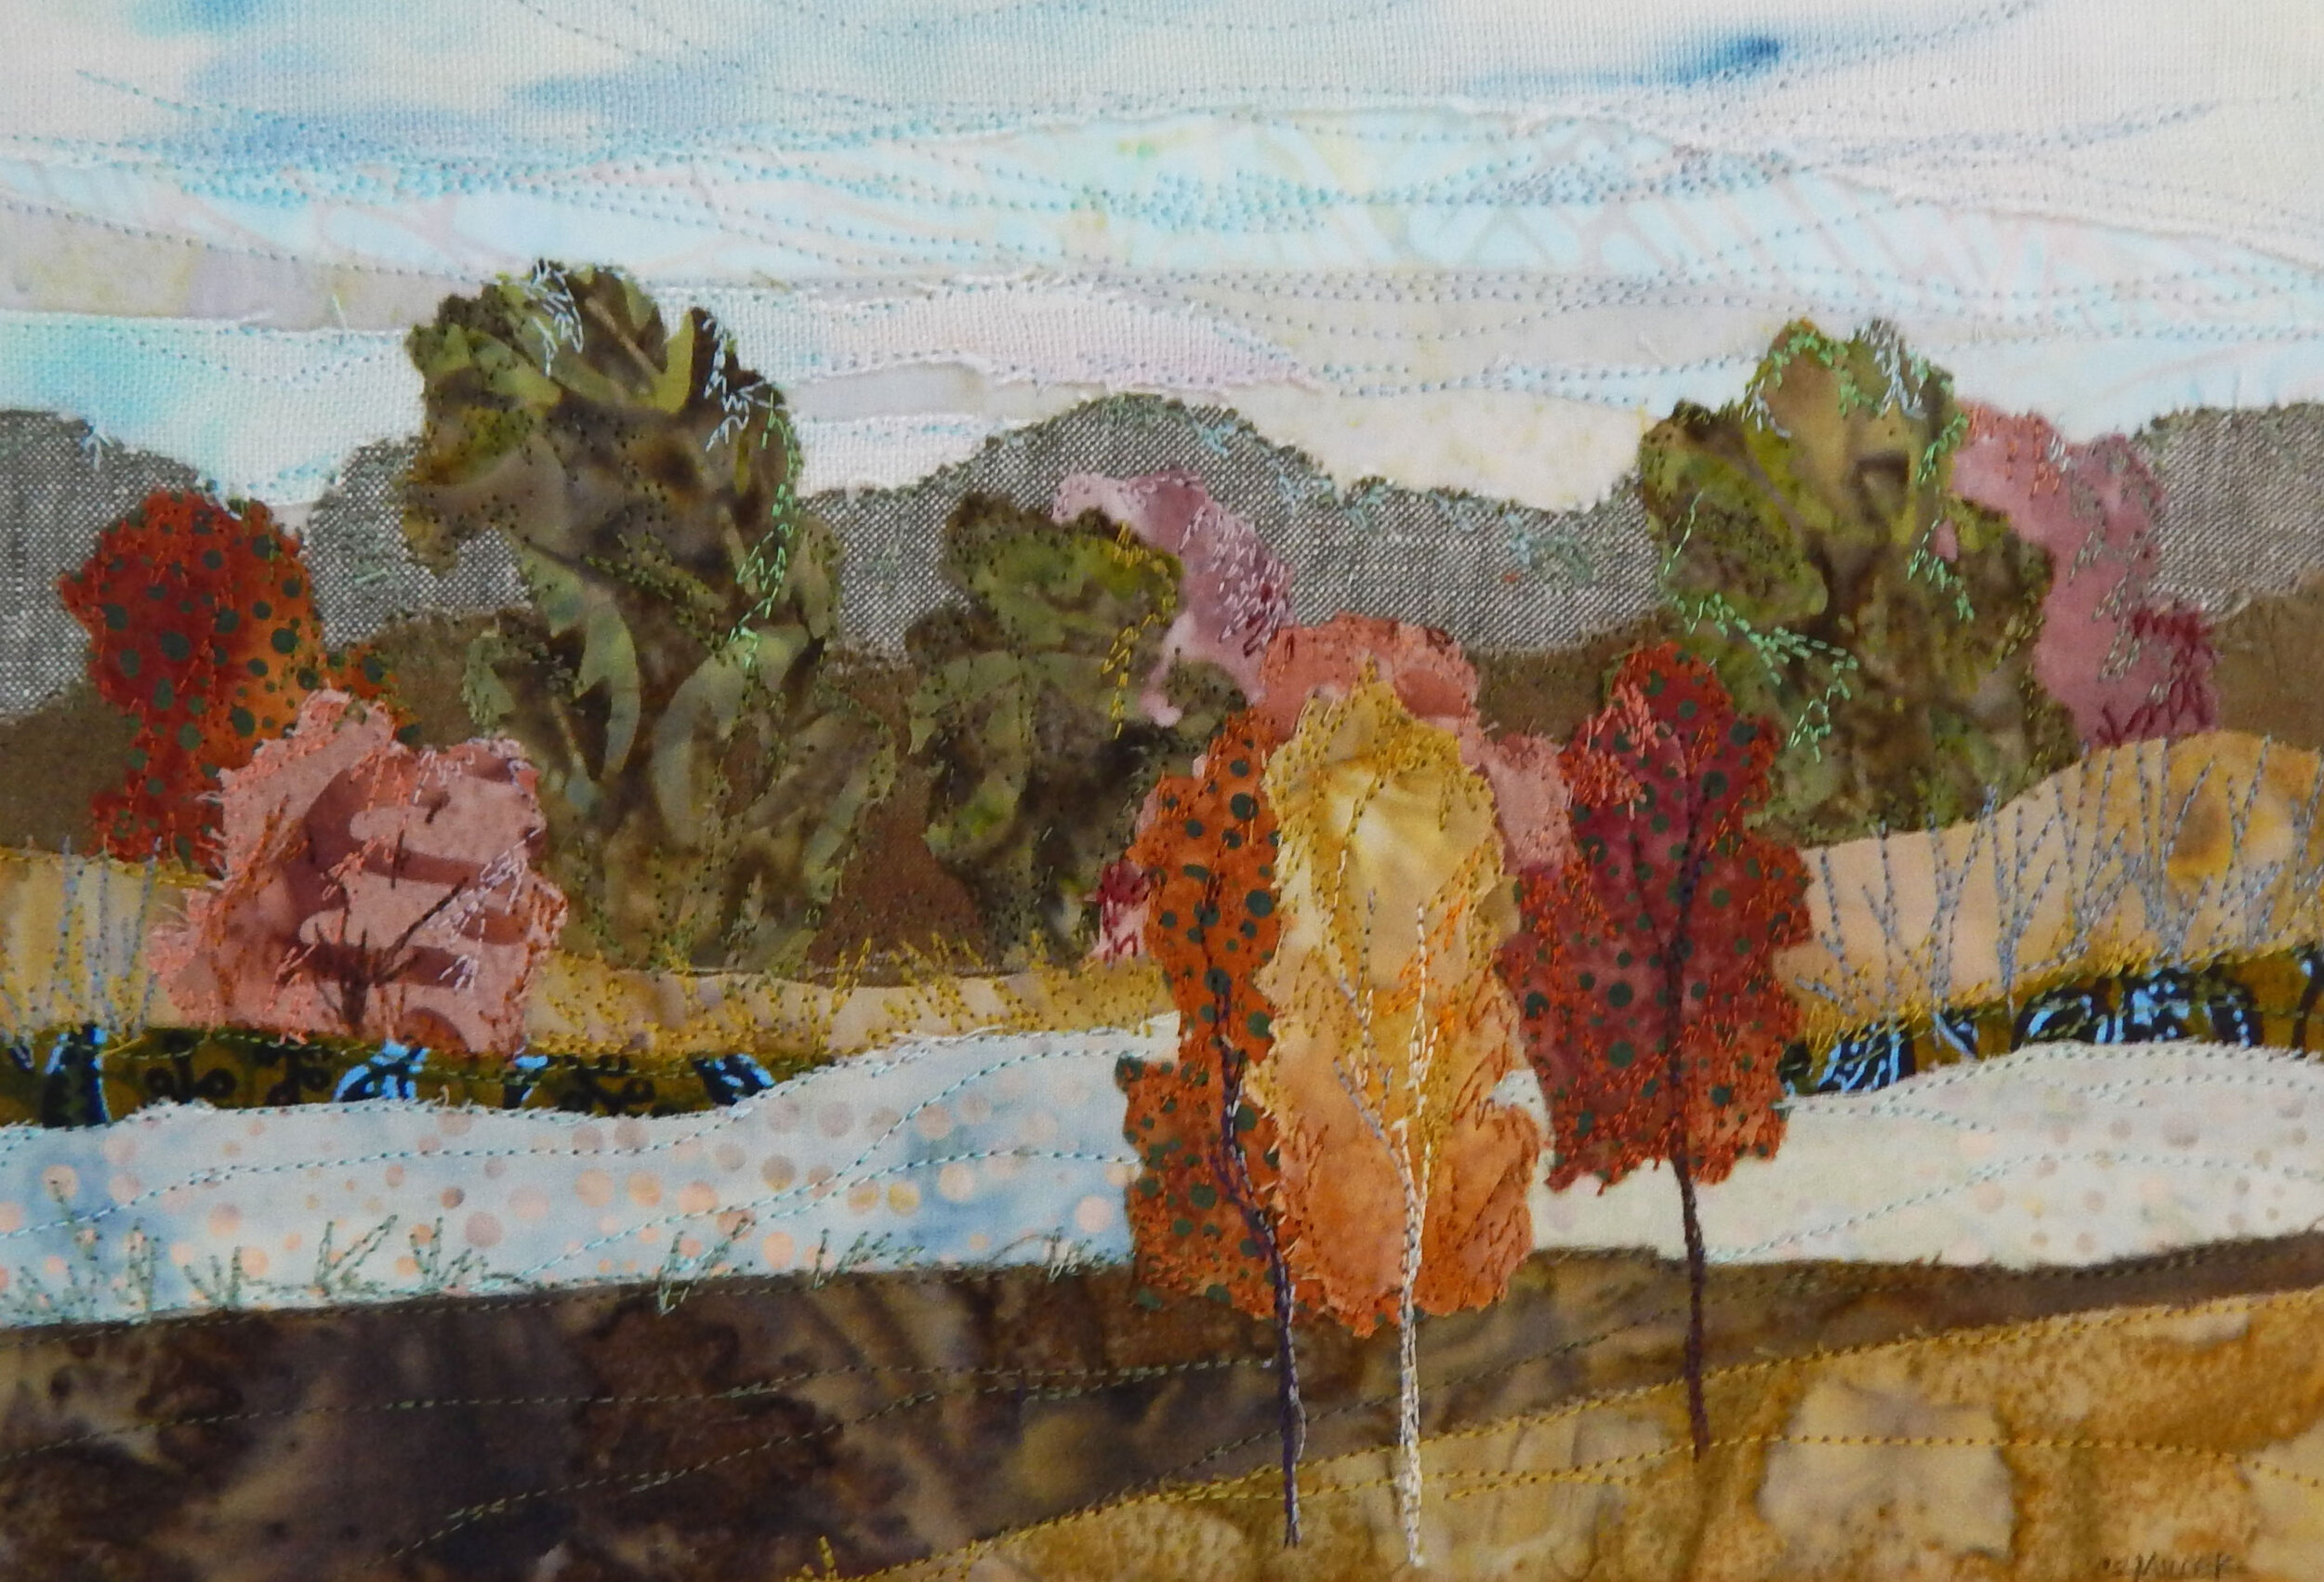 Early Autumn - framed fabric collage made with hand dyed cottons, batiks and linen, machine stitched / raw edge appliquéd